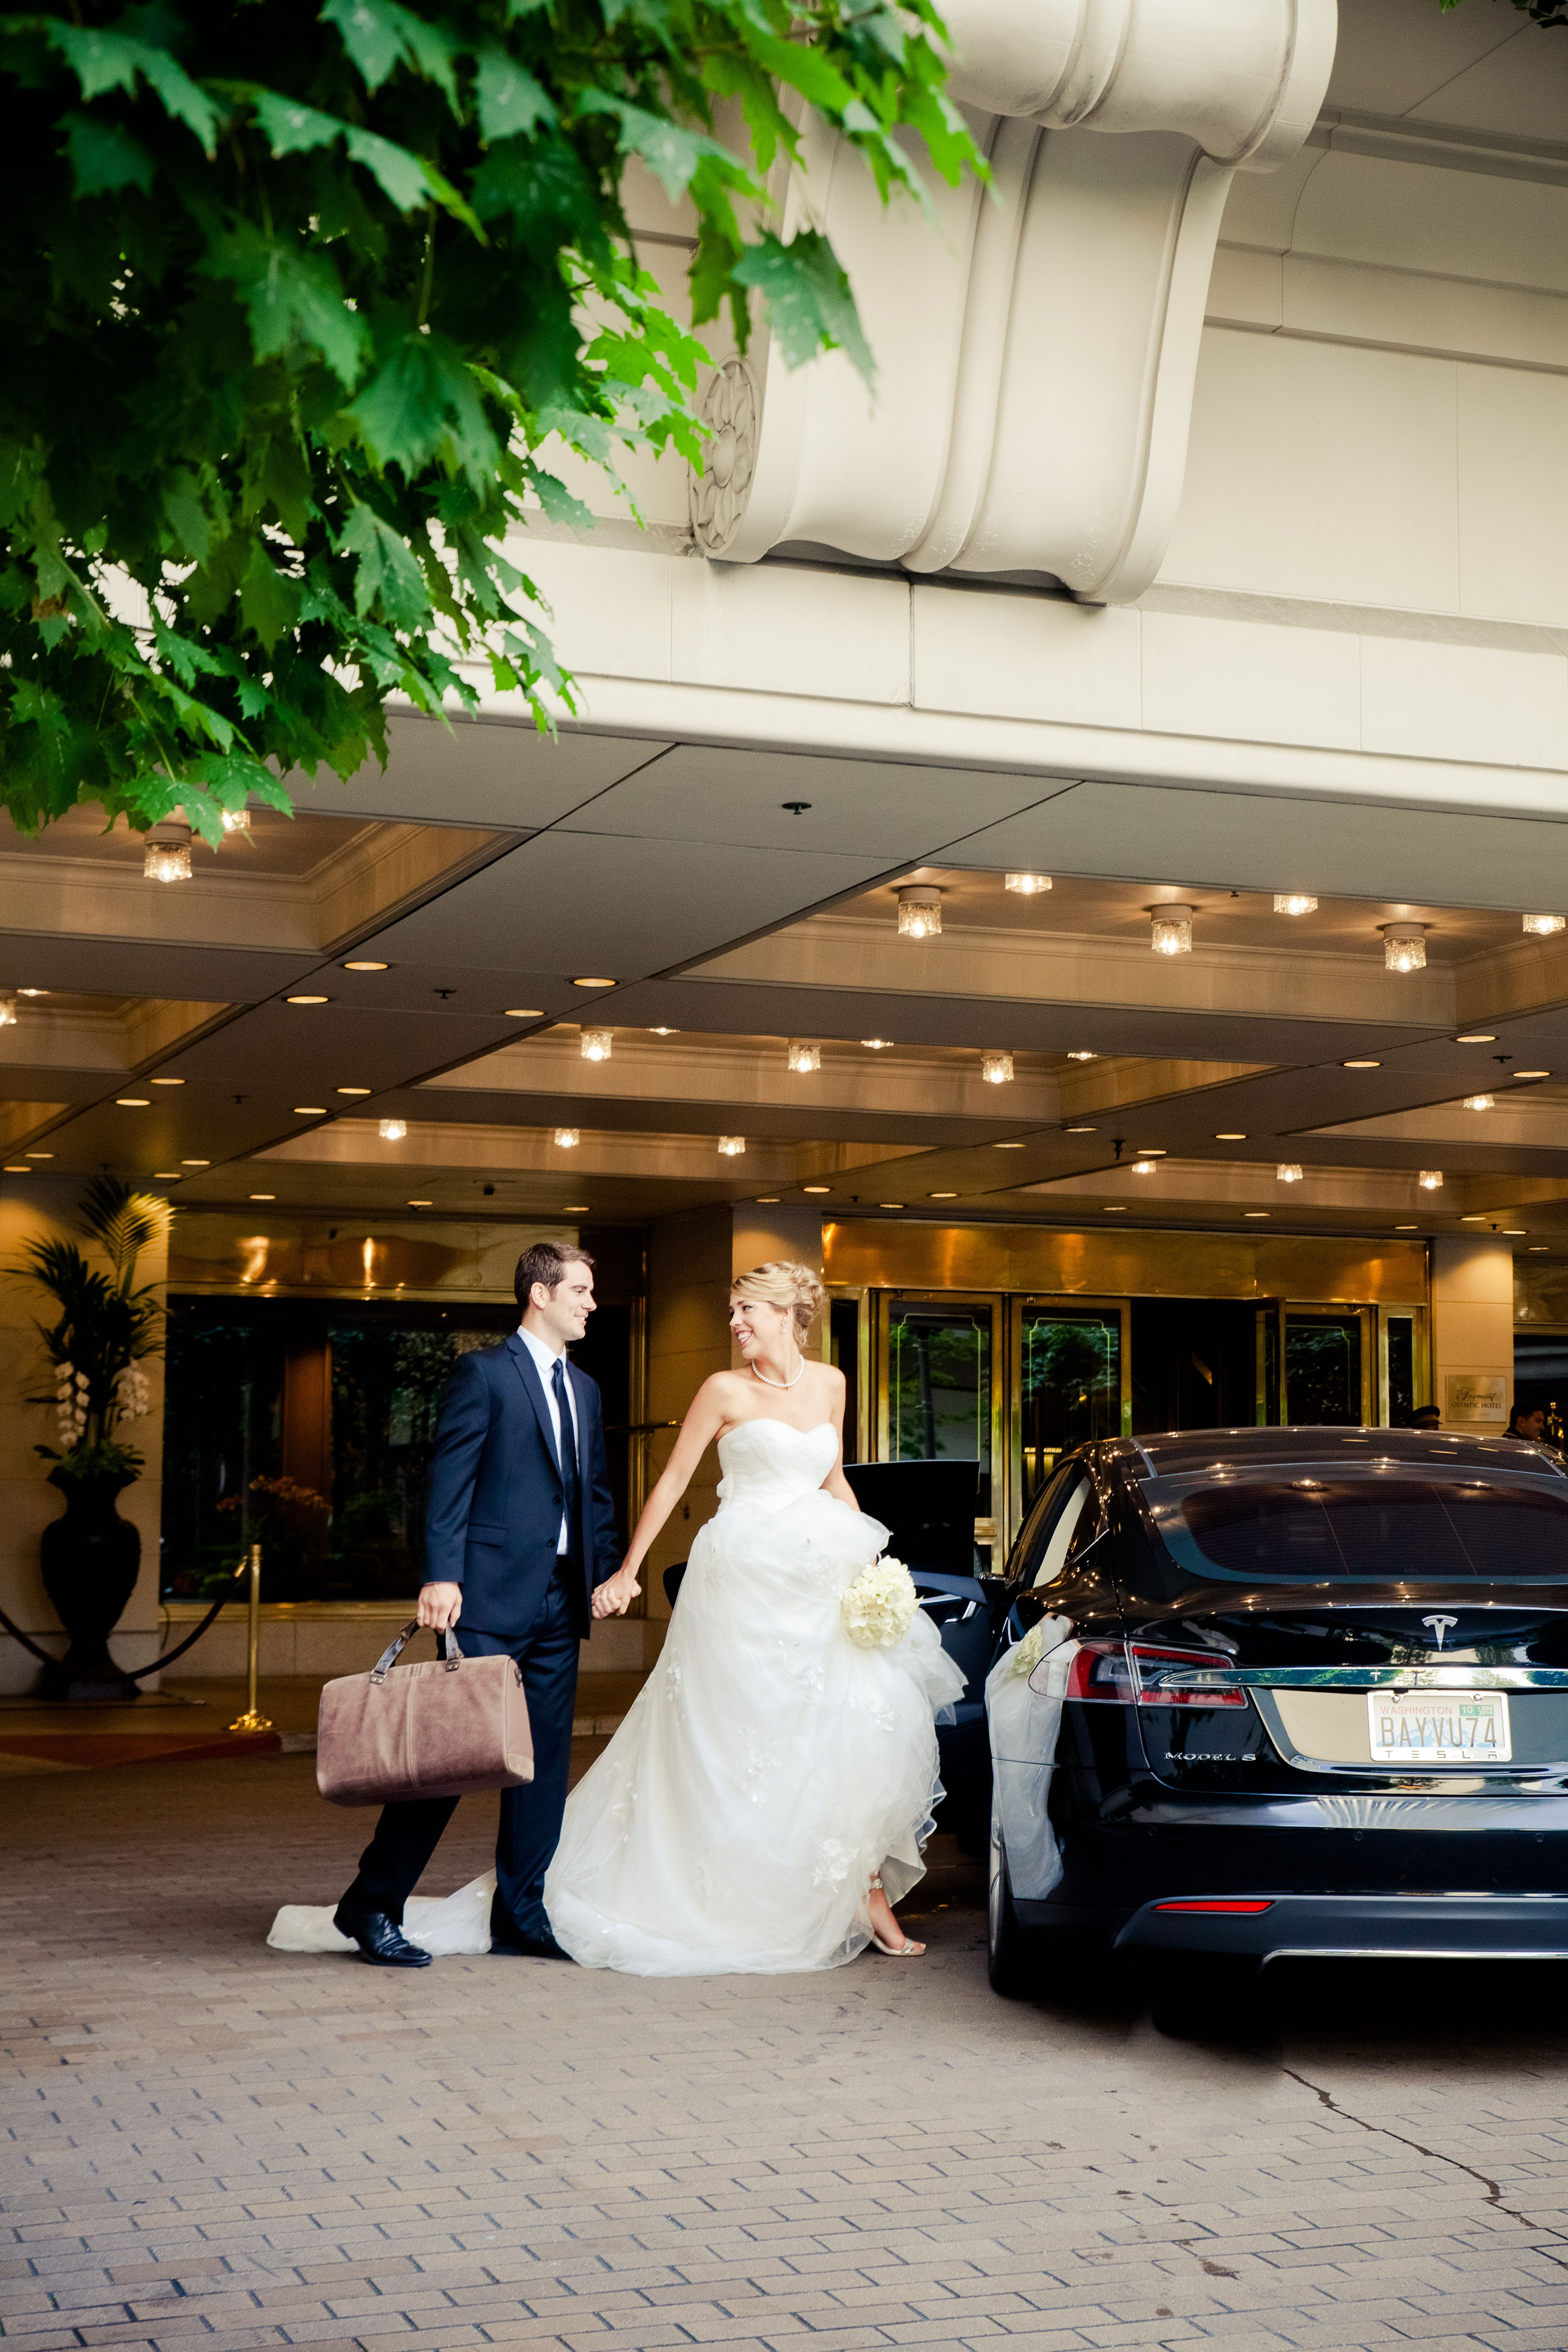 Make Your Great Escape From Our Grand Motor Entrance